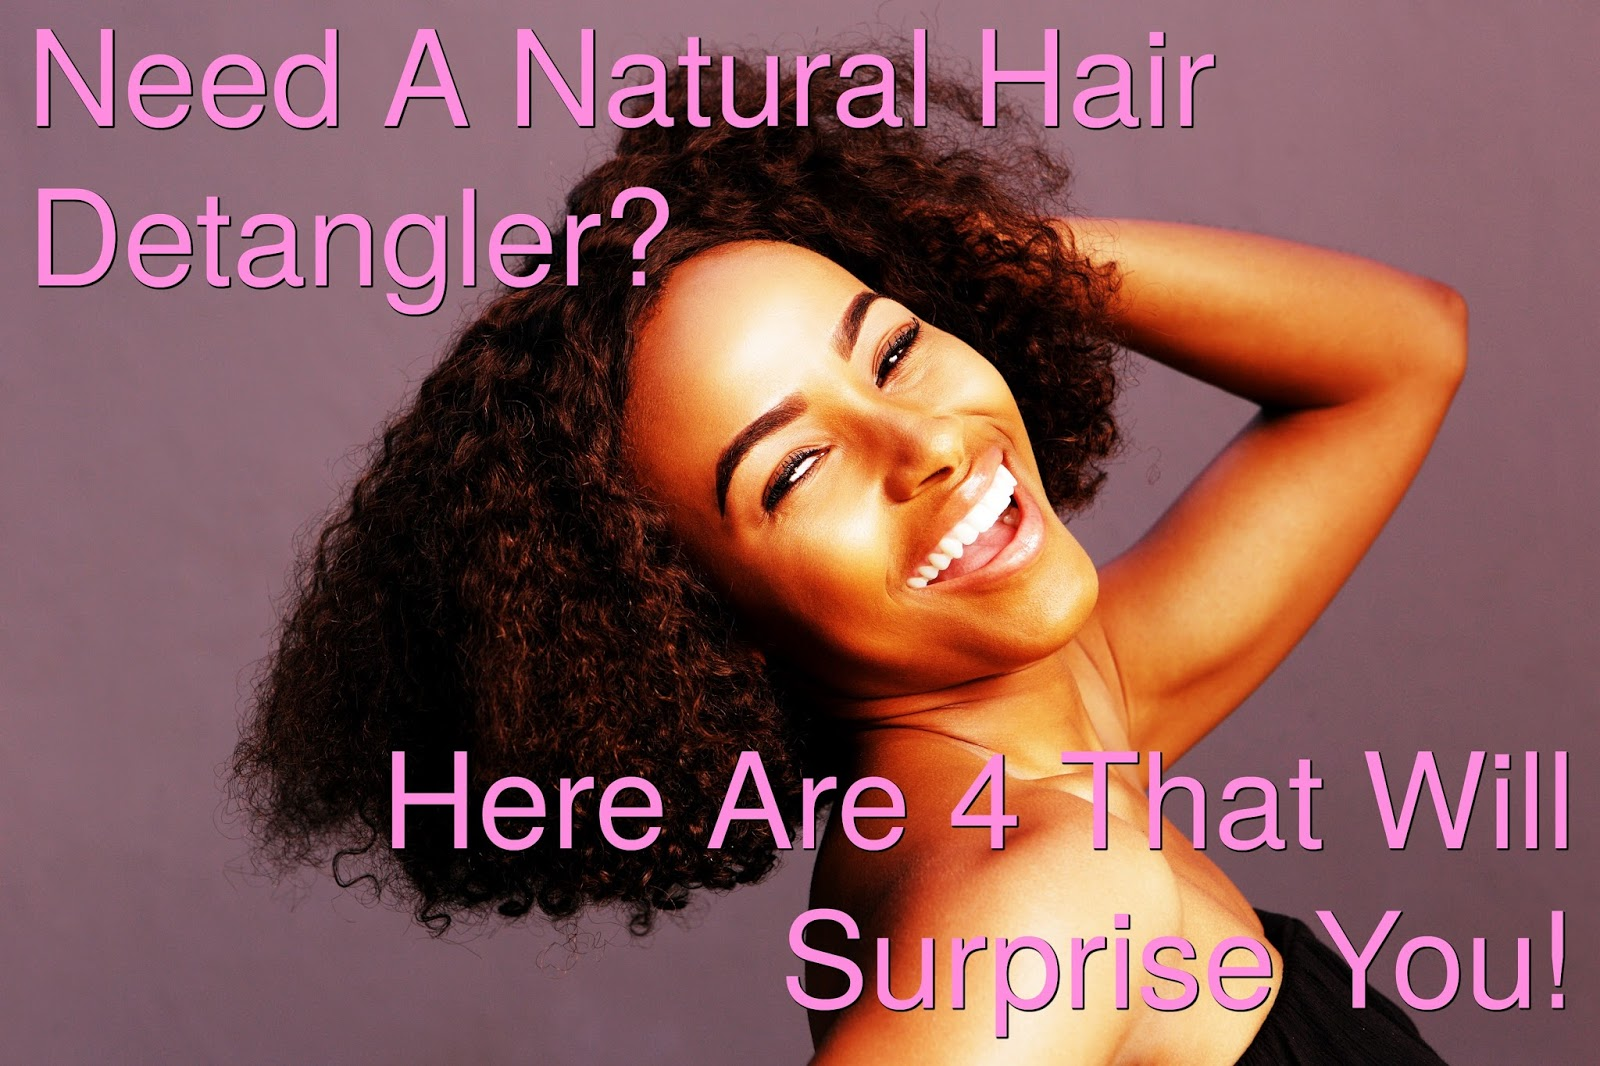 Detangler Issues? We've Got 4 Natural Hair Hacks You Need 4 Detangling! Time to think outside the box for perfect detangling that won't harm your hair!